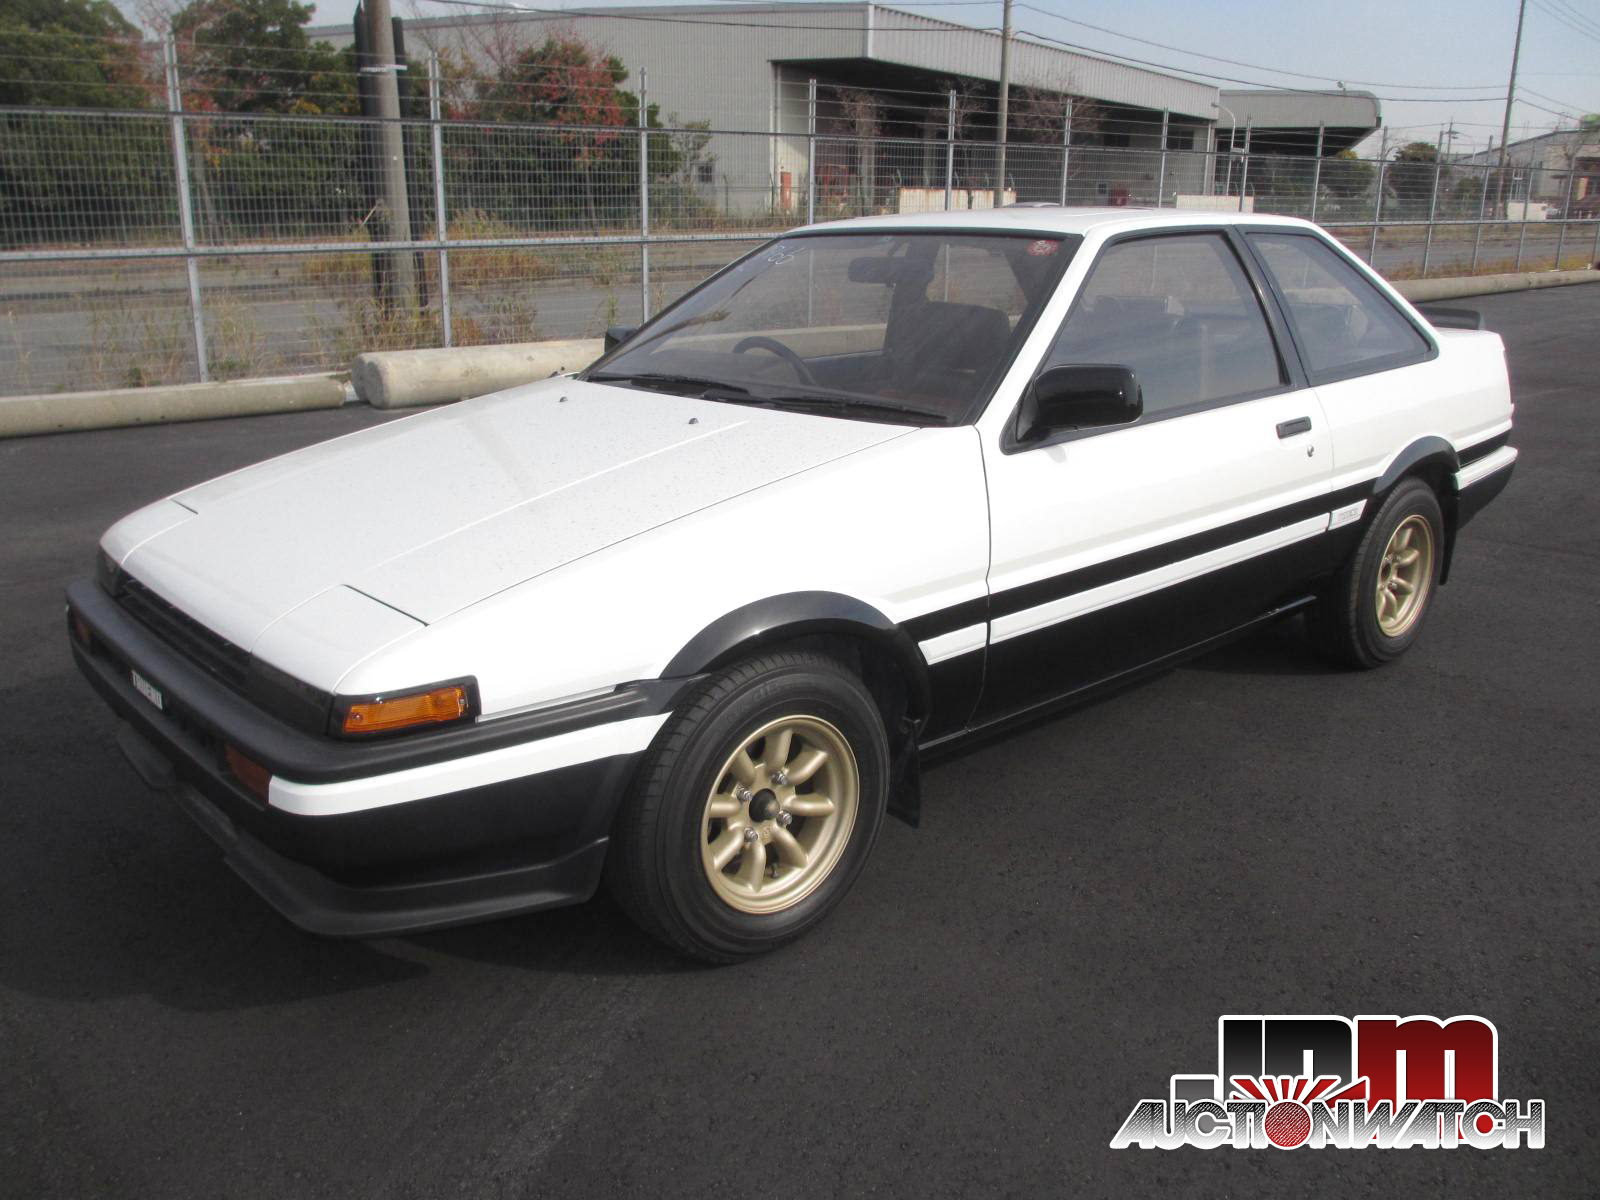 toyota corolla ae86 jdmauctionwatch. Black Bedroom Furniture Sets. Home Design Ideas